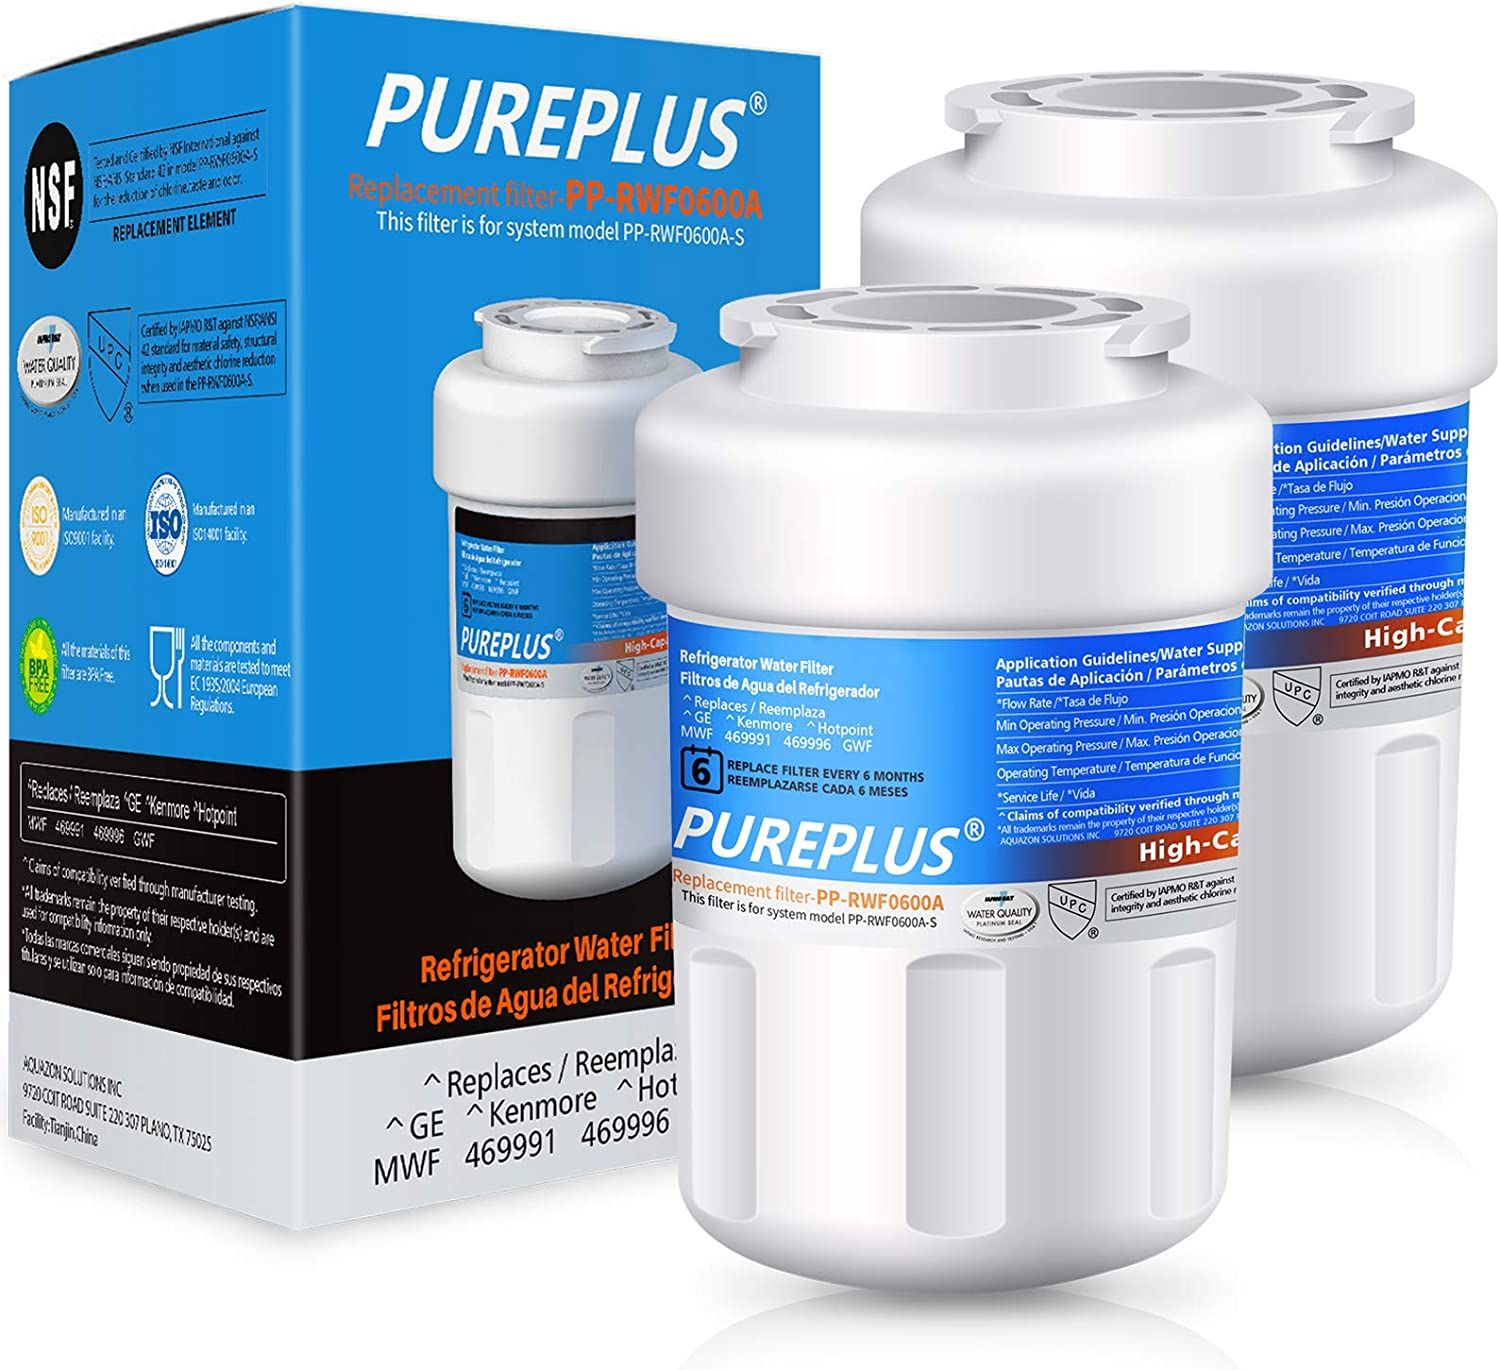 Amazon Com Pureplus Mwf Water Filter Replacement For Ge Smartwater Hdx Fmg 1 Mwfp Mwfa Pl 100 Wfc1201 Rwf0600a Pc75009 Rwf1060 197d6321p006 Gse25gshecss Kenmore 469991 Refrigerator Cartridge 2pack